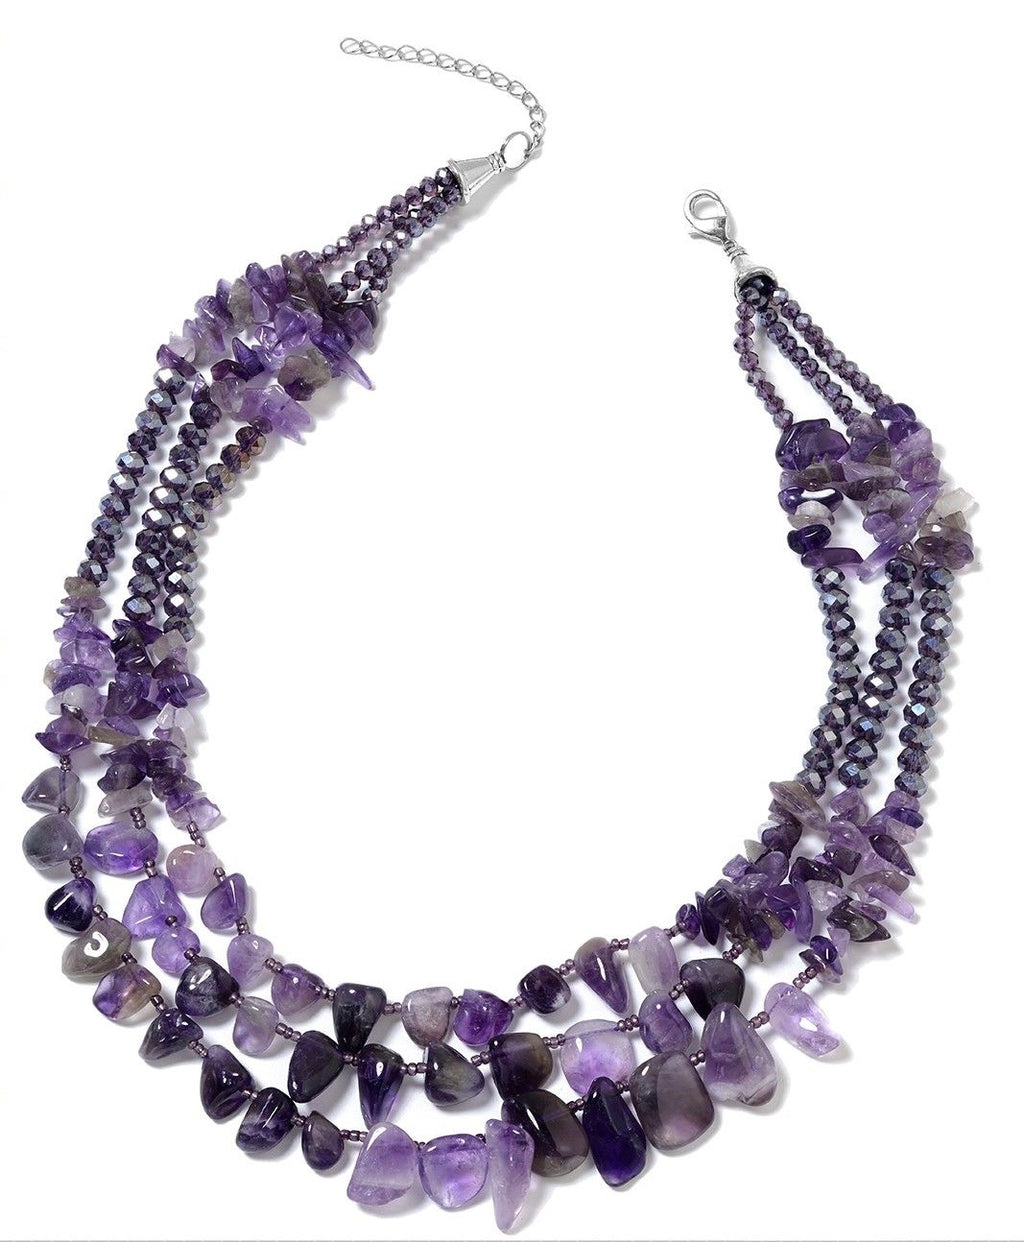 "Amethyst & Swarovski Crystal Mix 18"" Necklace"